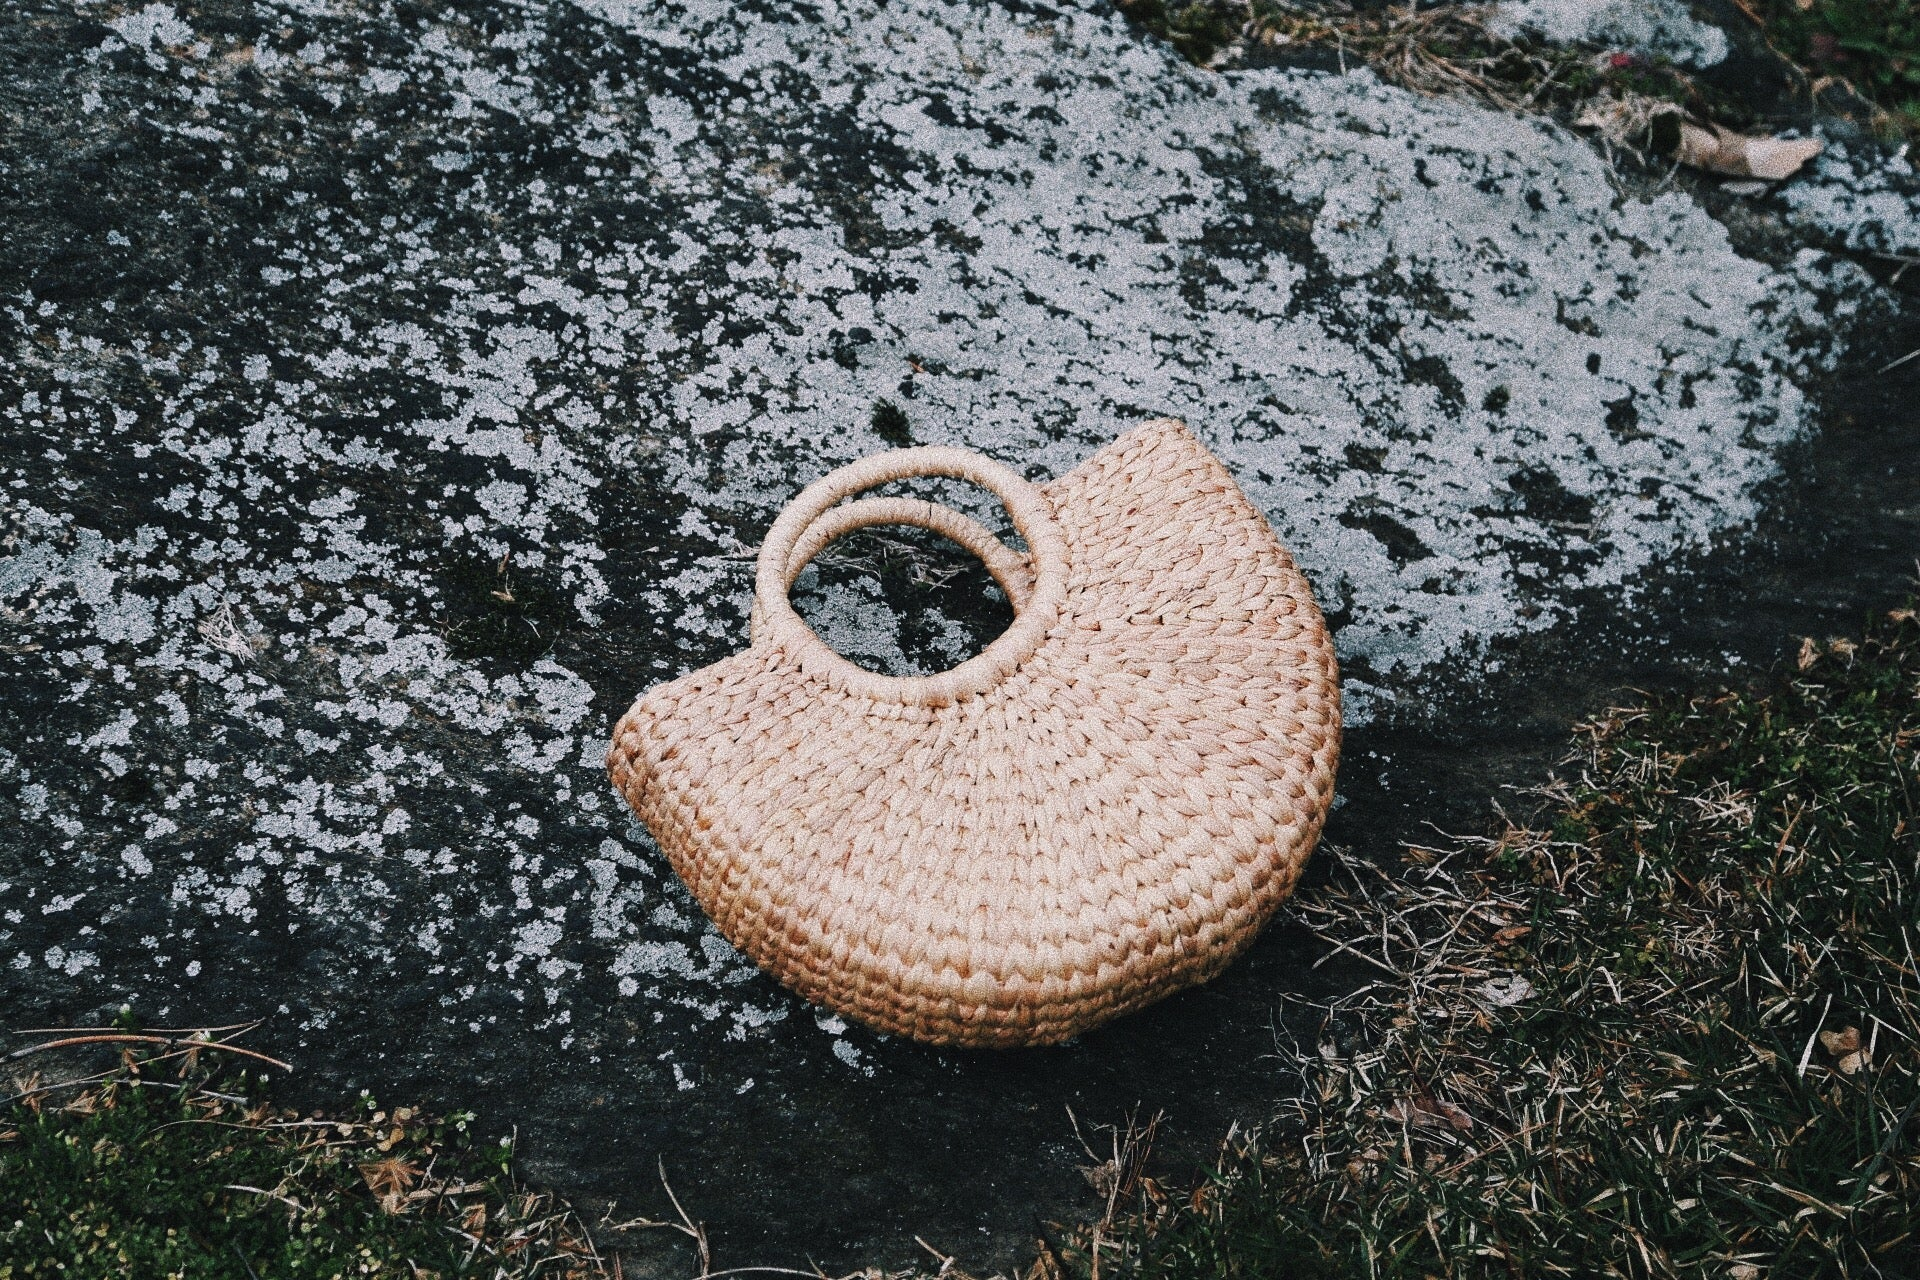 Half Round Woven Hyacinth Bag - Small